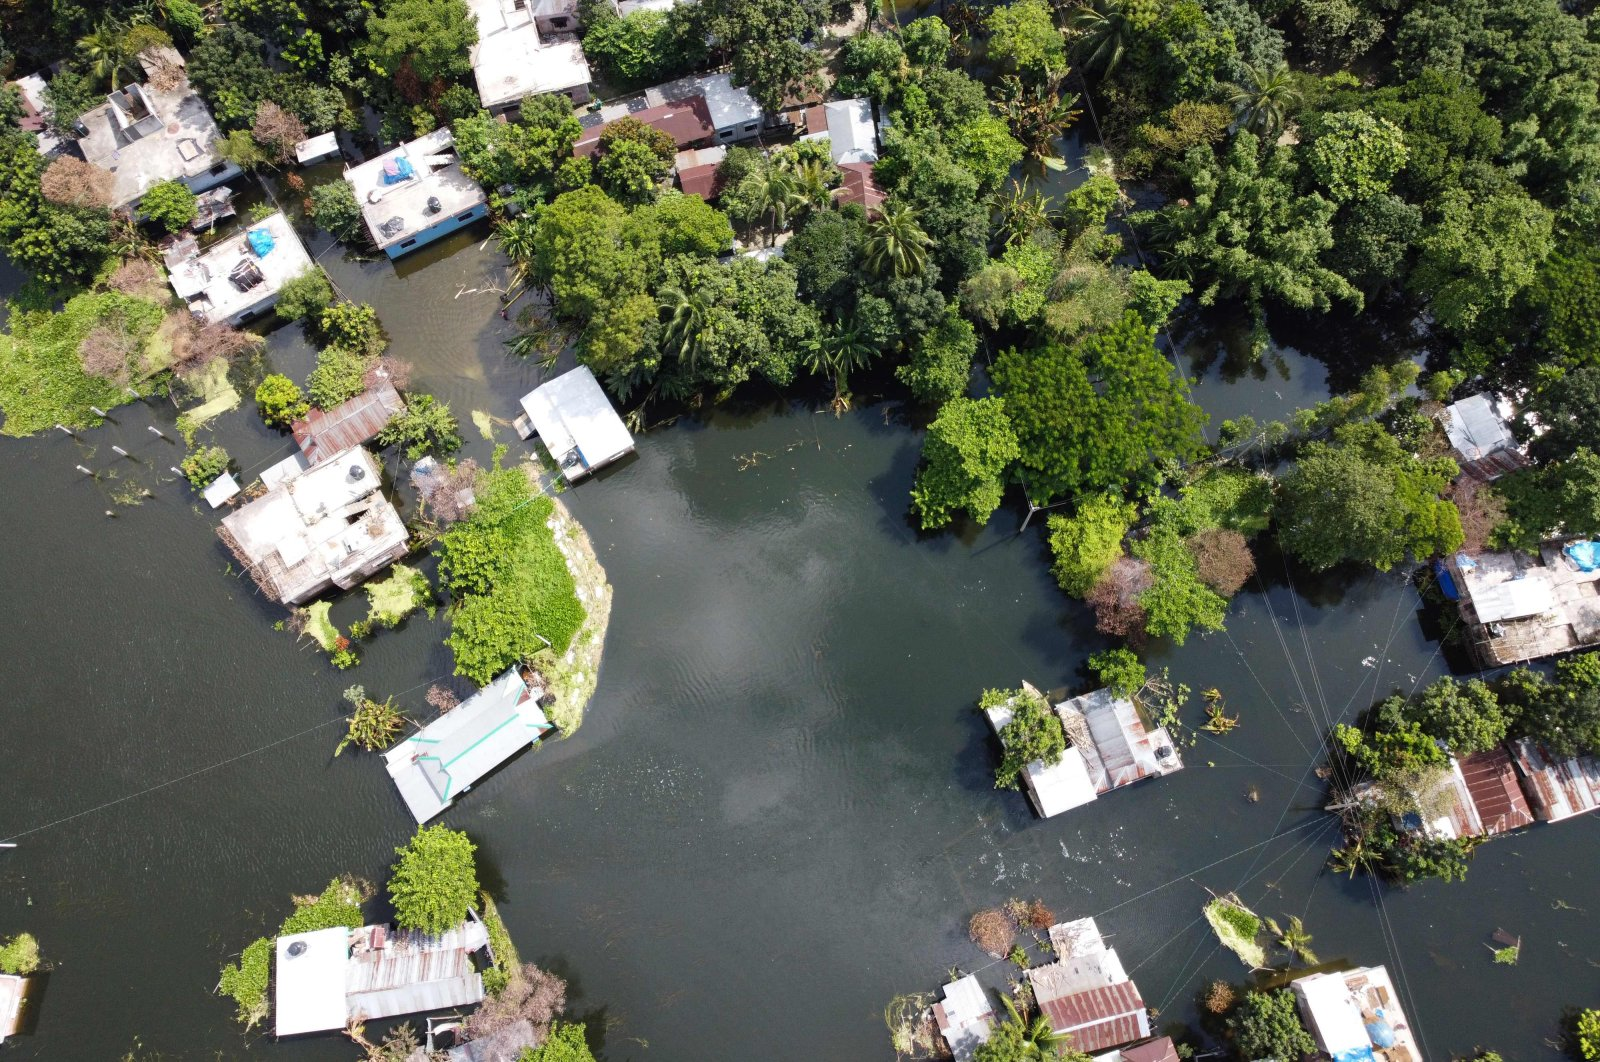 An aerial view shows a flooded residential area due to recent monsoon rainfalls, Dhamrai, Aug. 11, 2020. (AFP Photo)